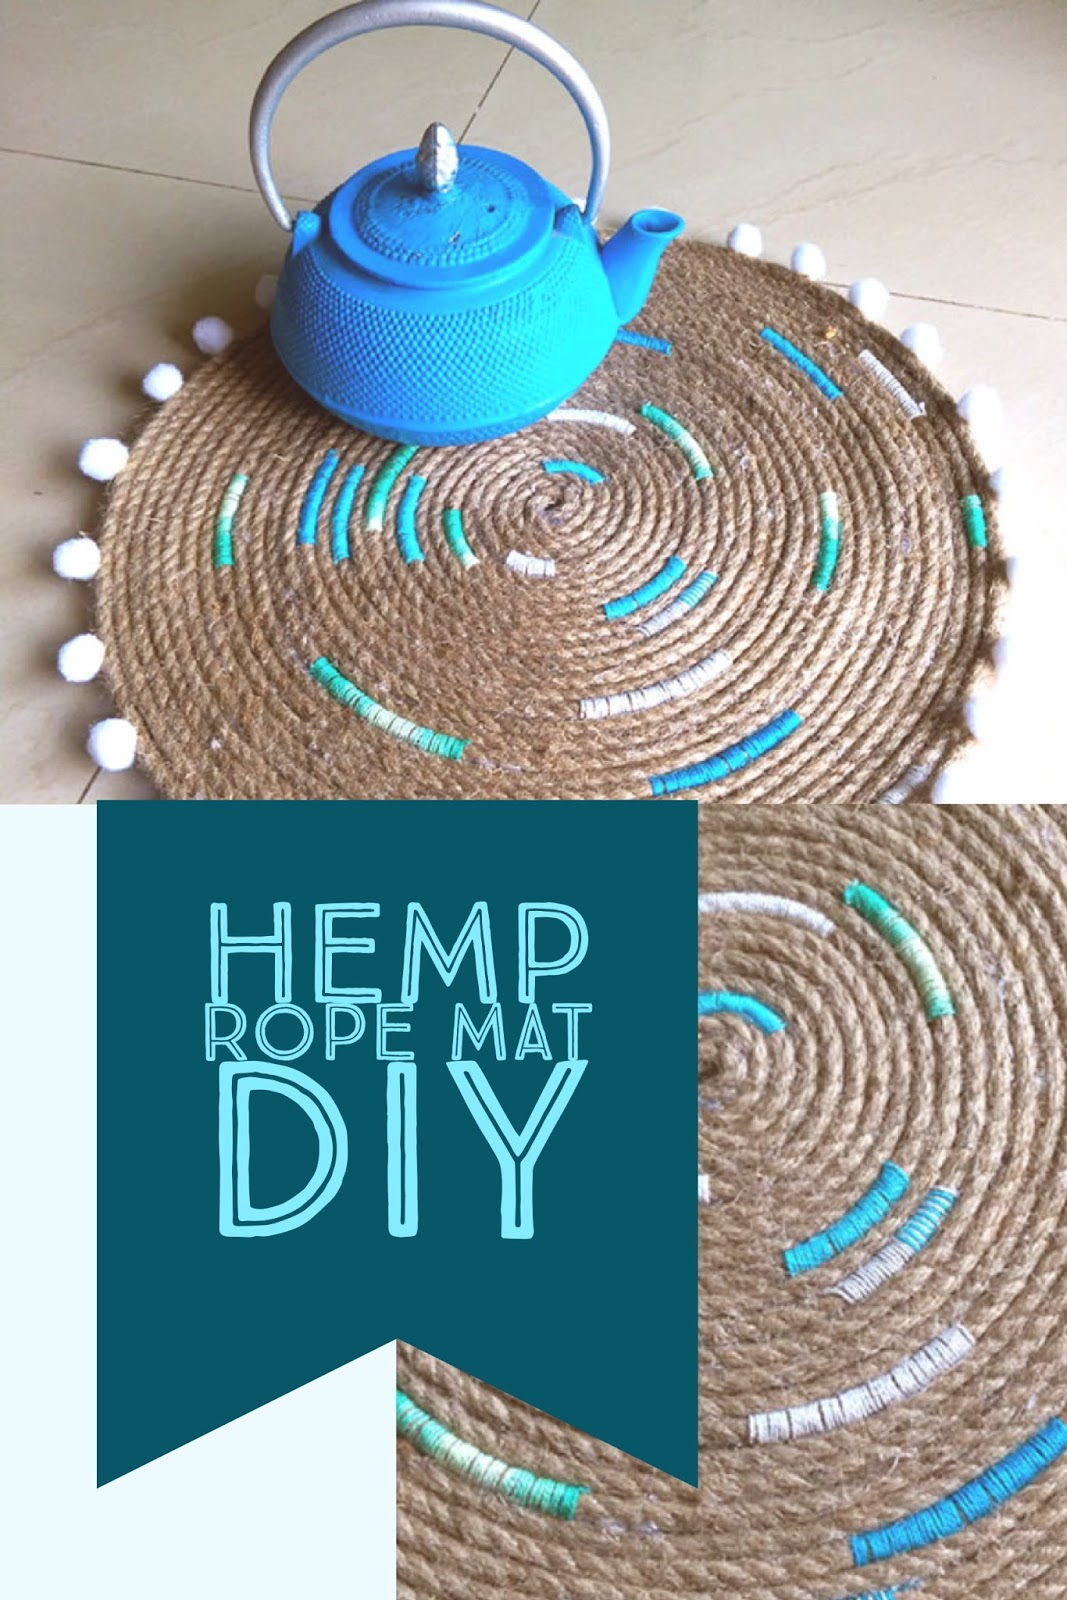 Coastal decor hemp rope mat DIY project